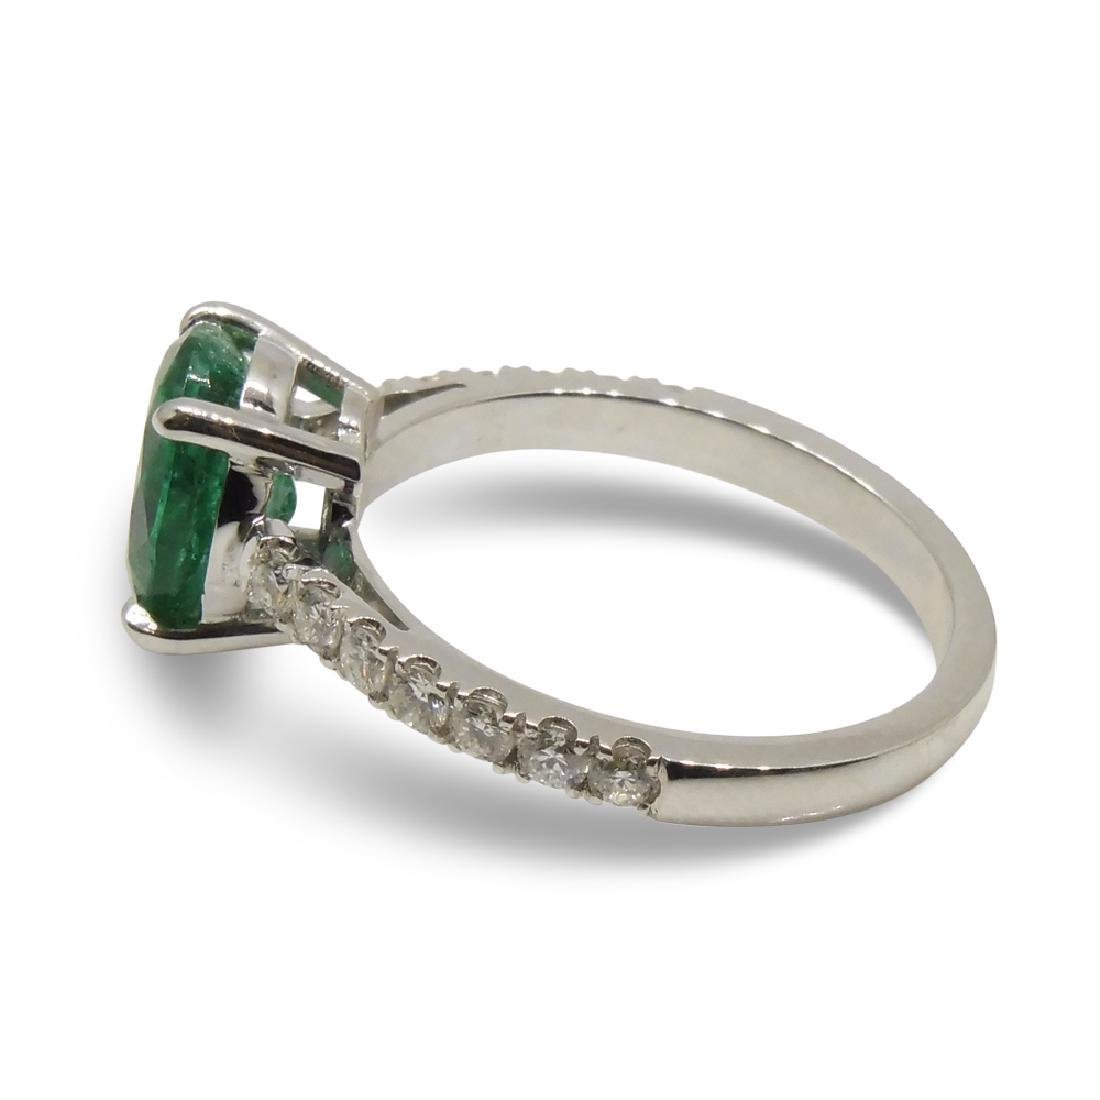 14K White Gold Emerald Diamond Ring, 1.82ct - 9